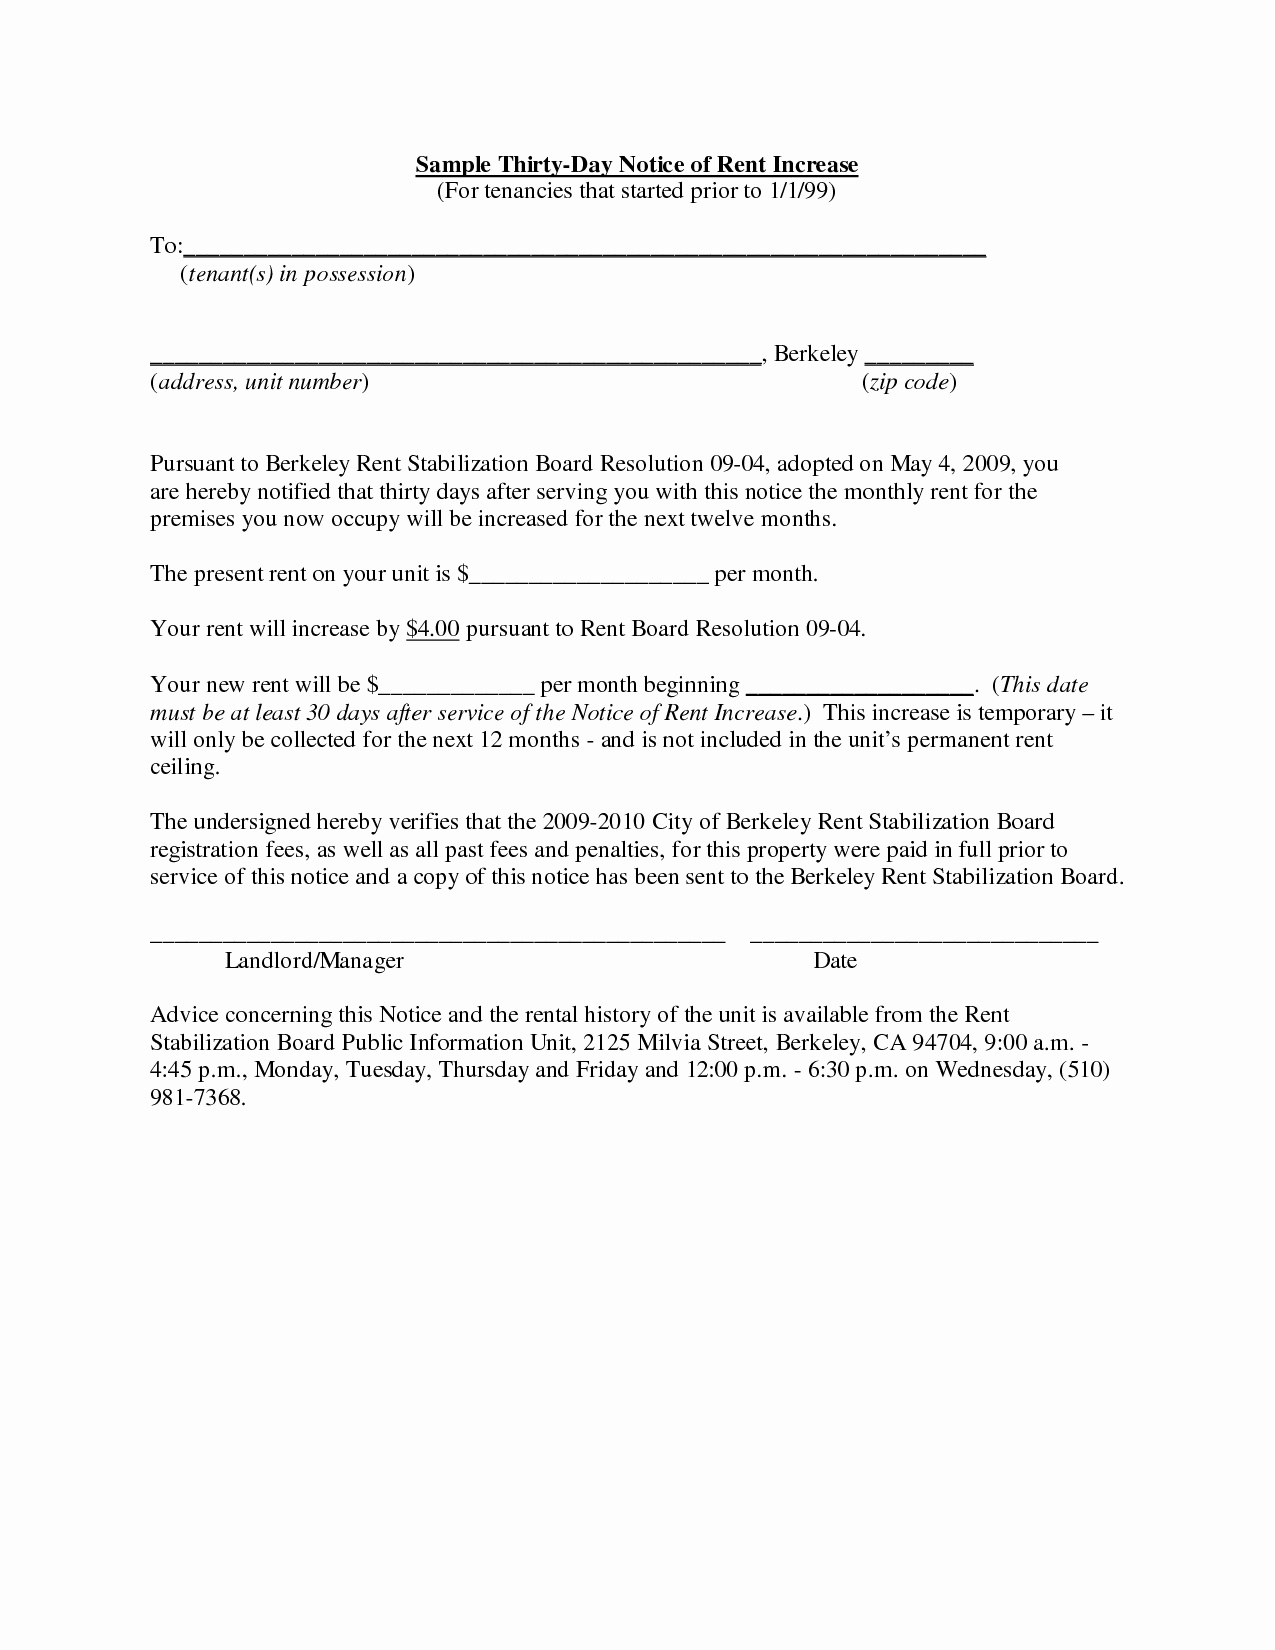 Sample Rent Increase Notice Elegant Best S Of Rent Increase Letter to Tenant In